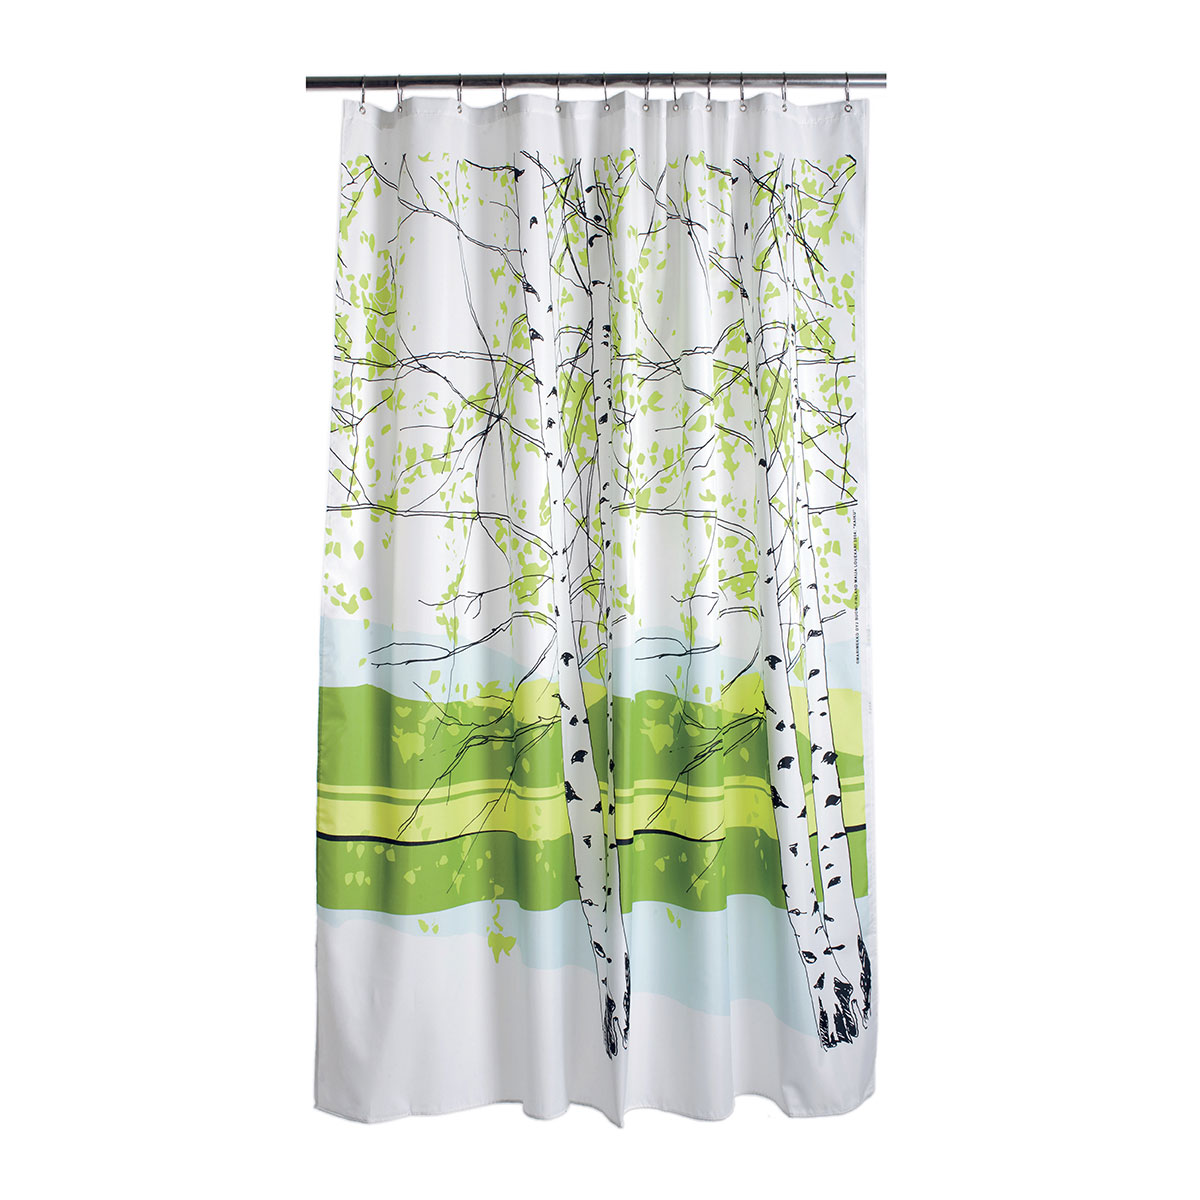 fabric blue light kaiku black cotton en green curtains com marimekko